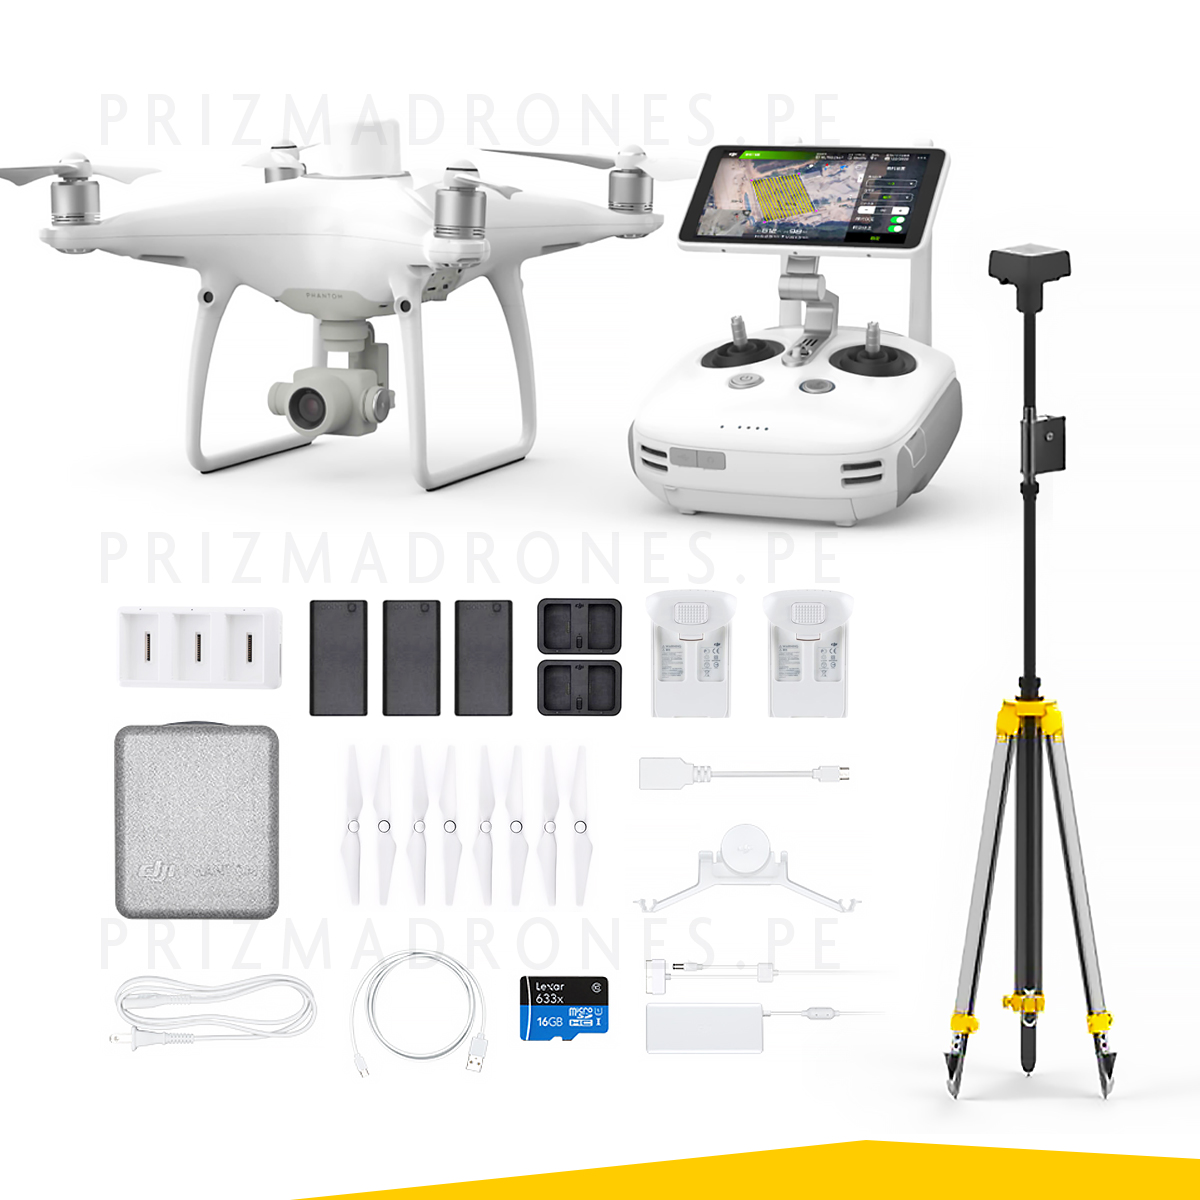 Phantom 4 RTK – Combo + Mobile Station - ¡PROMOCIÓN!